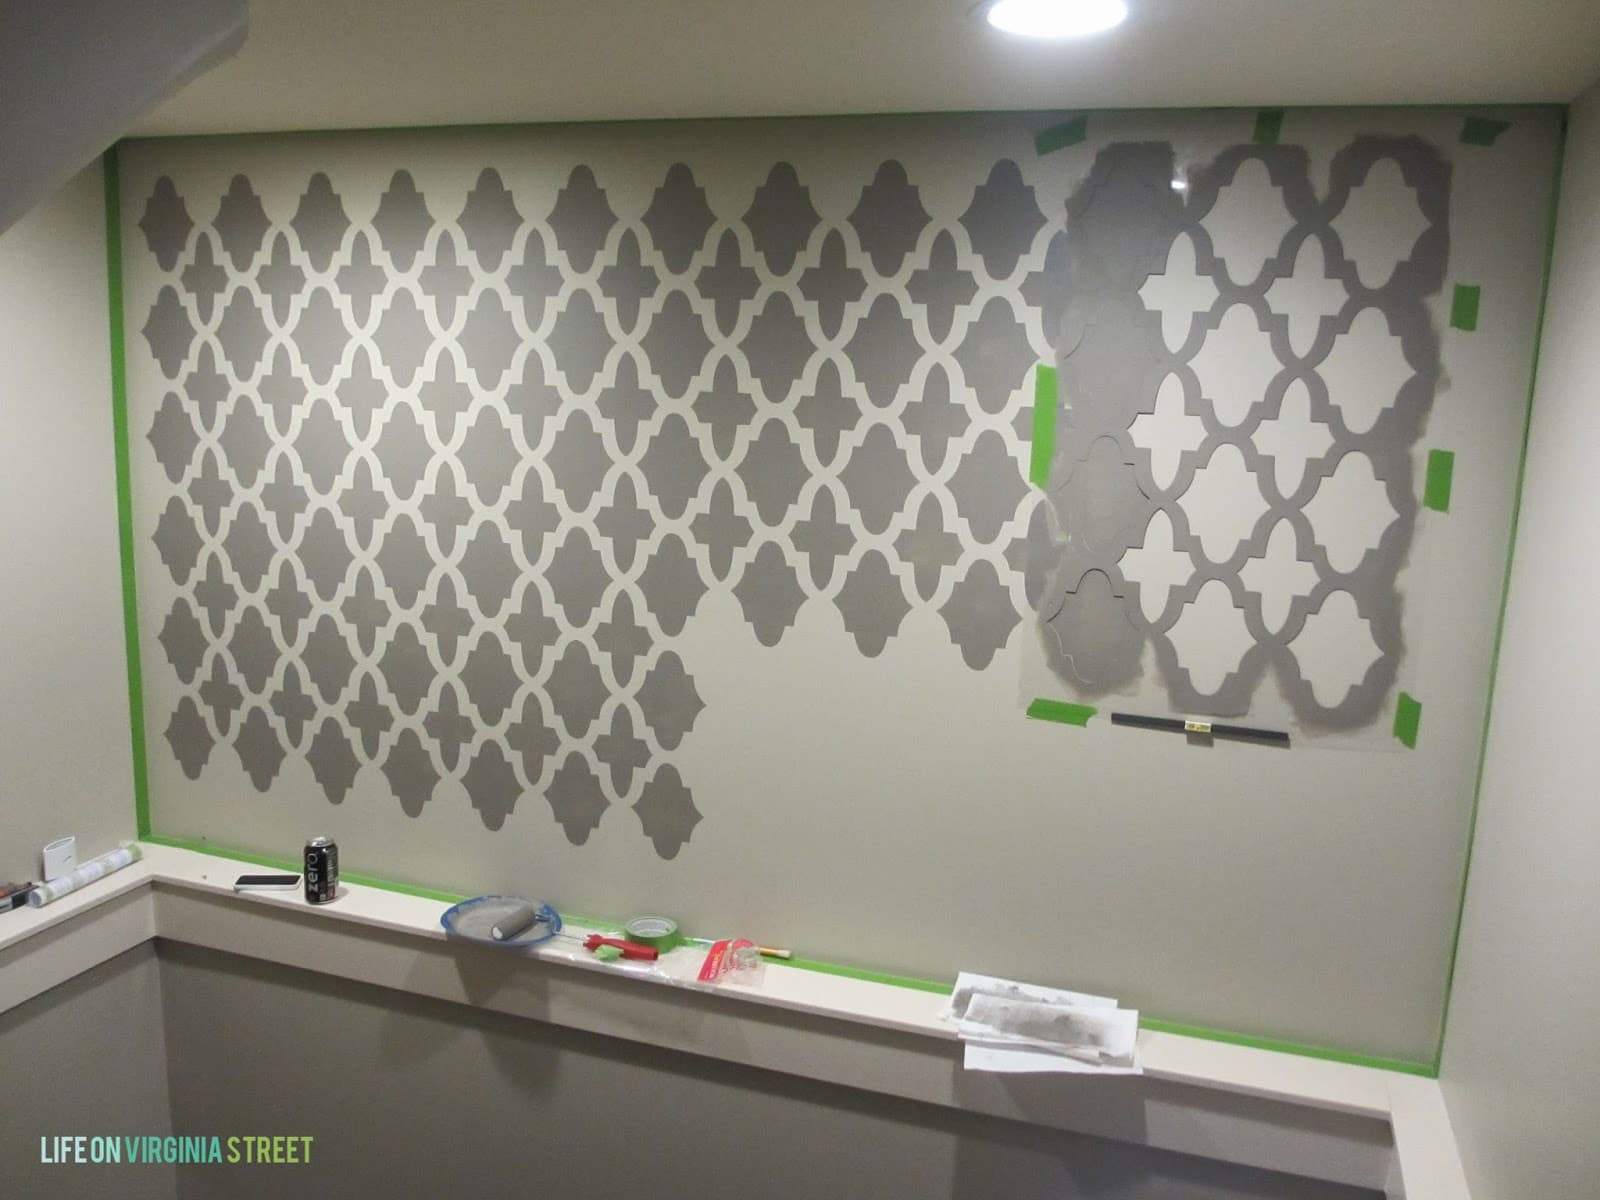 Painting the stencils on the wall in a grey color.